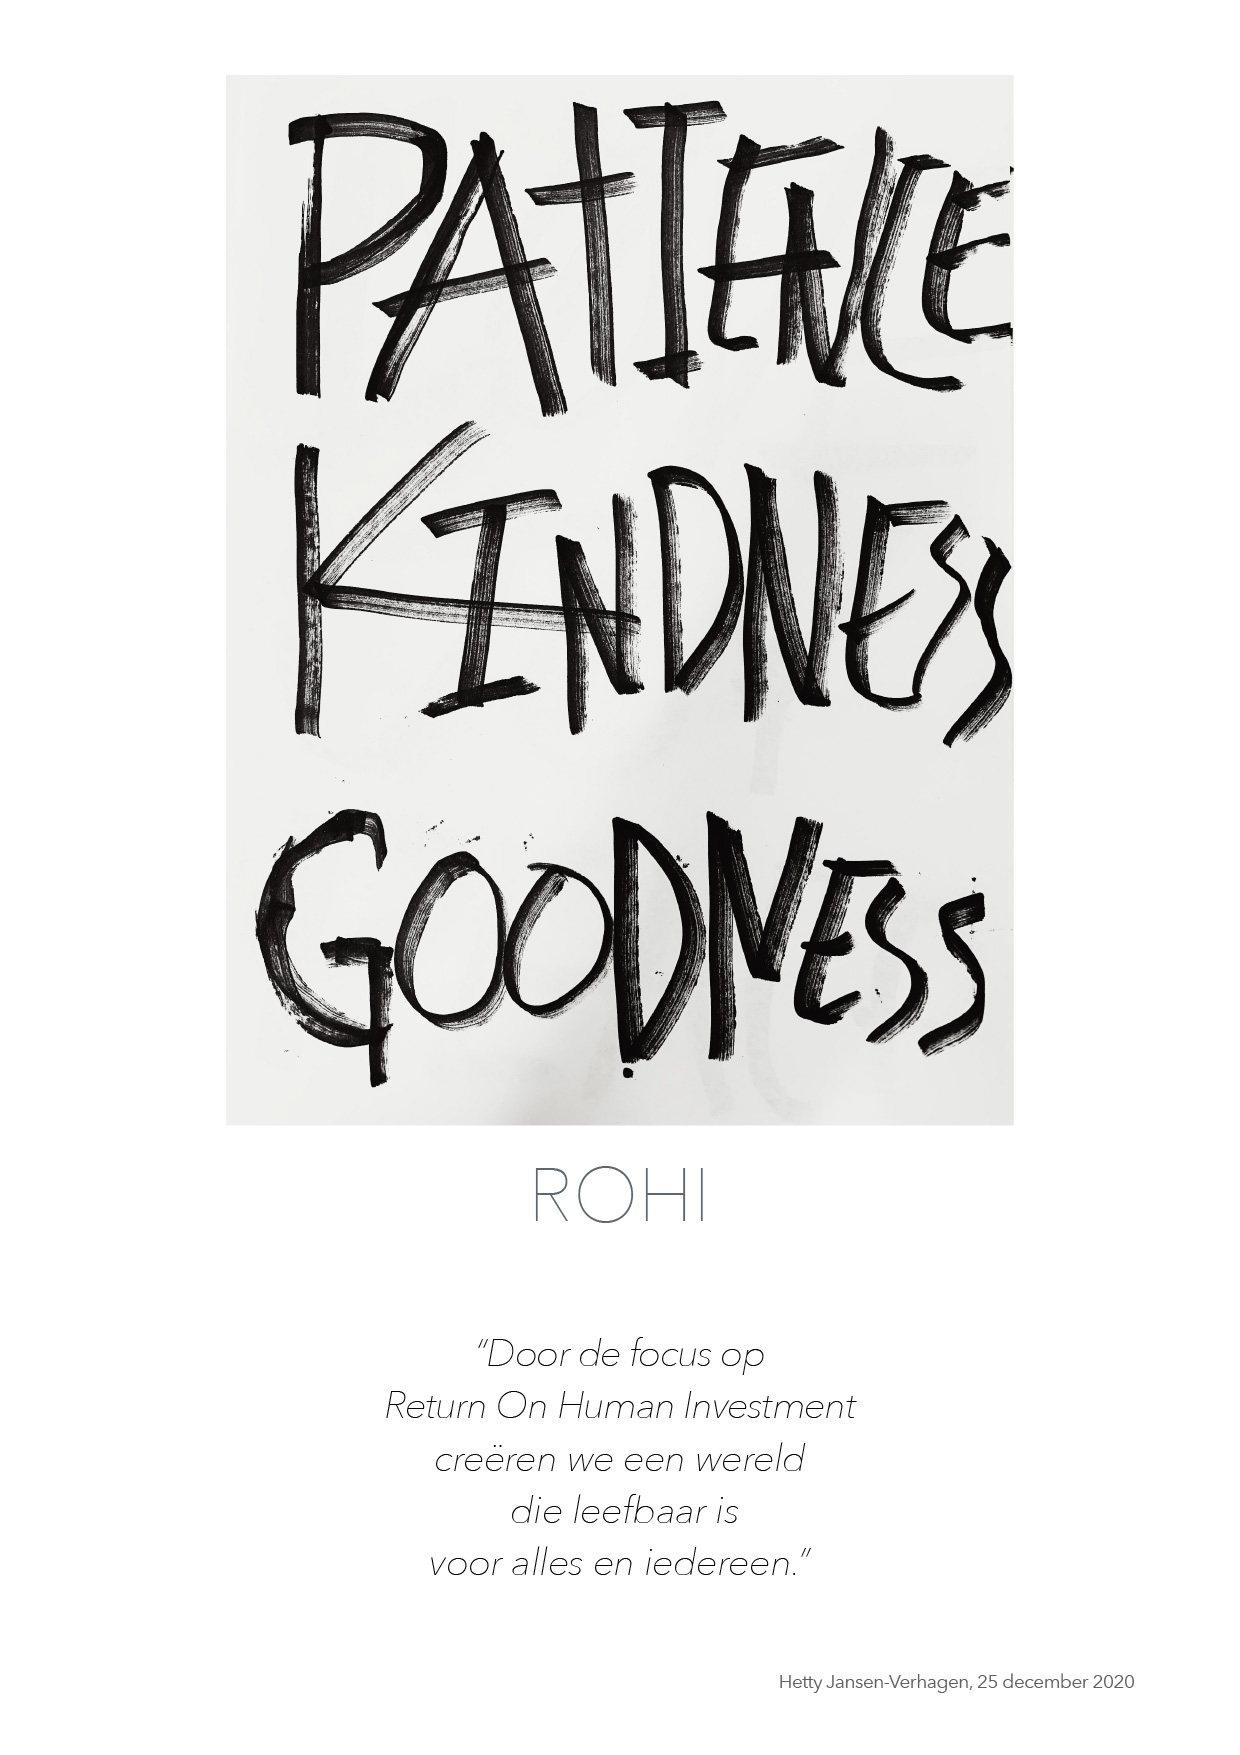 ROHI - Return on Human Investment - quote HJTC